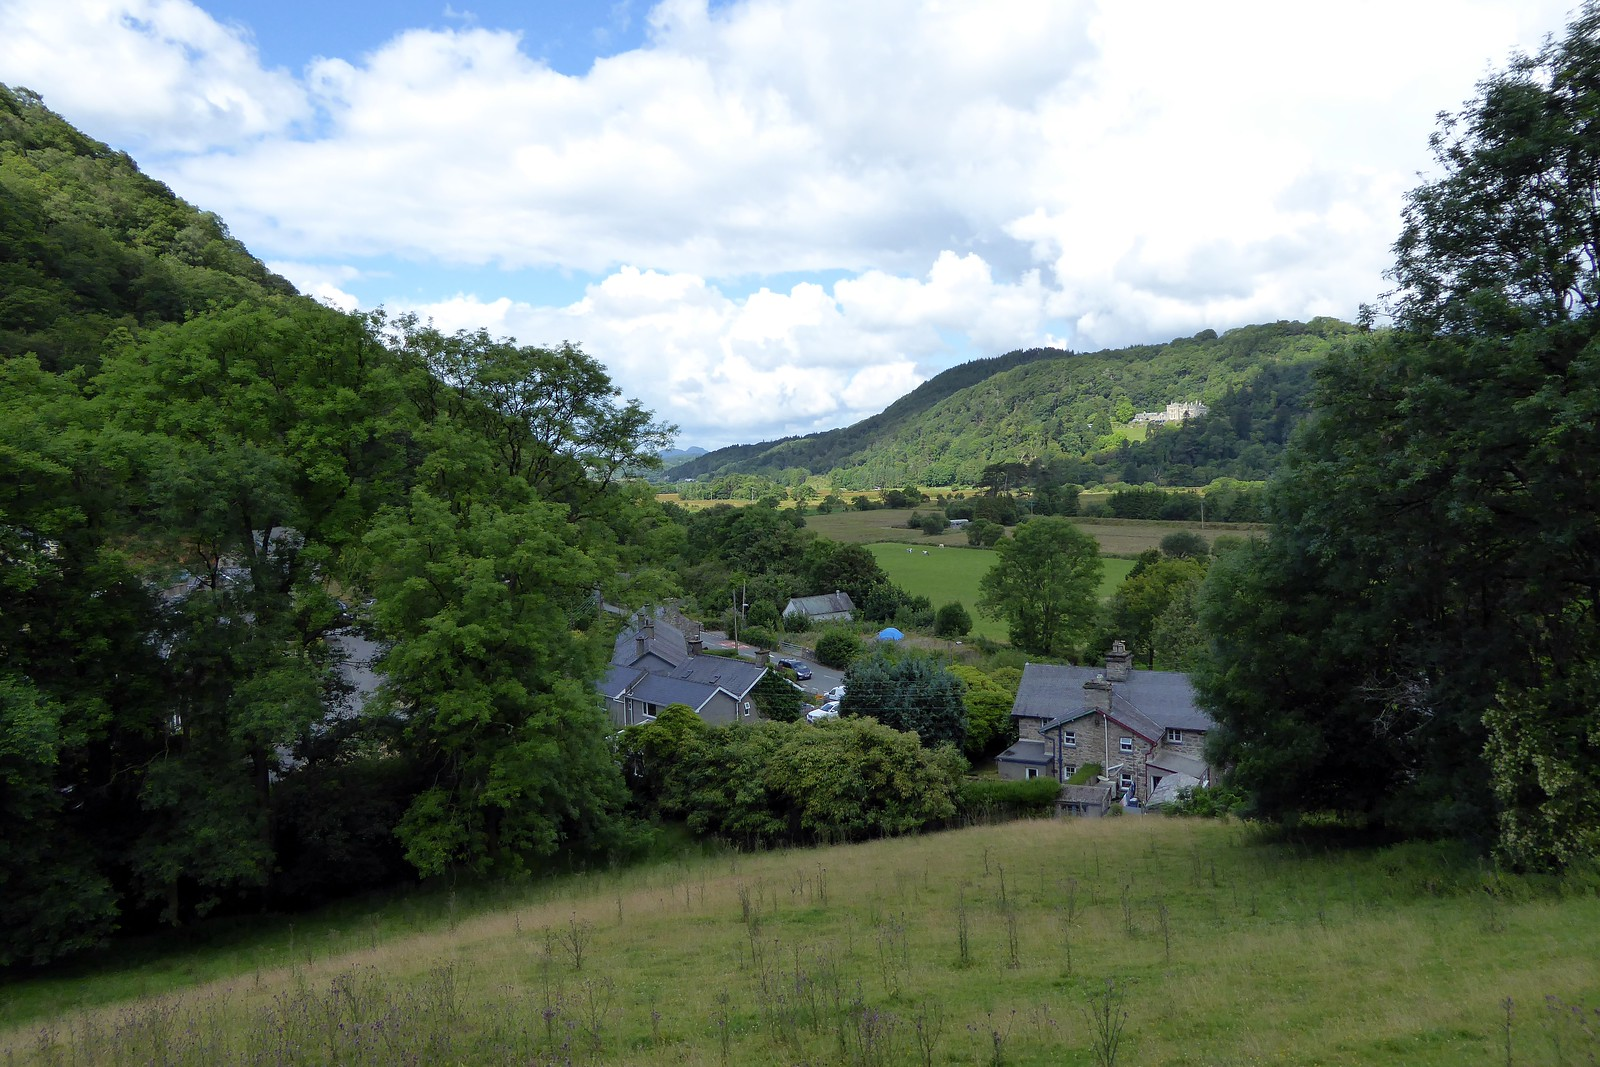 Looking down on Maentwrog village